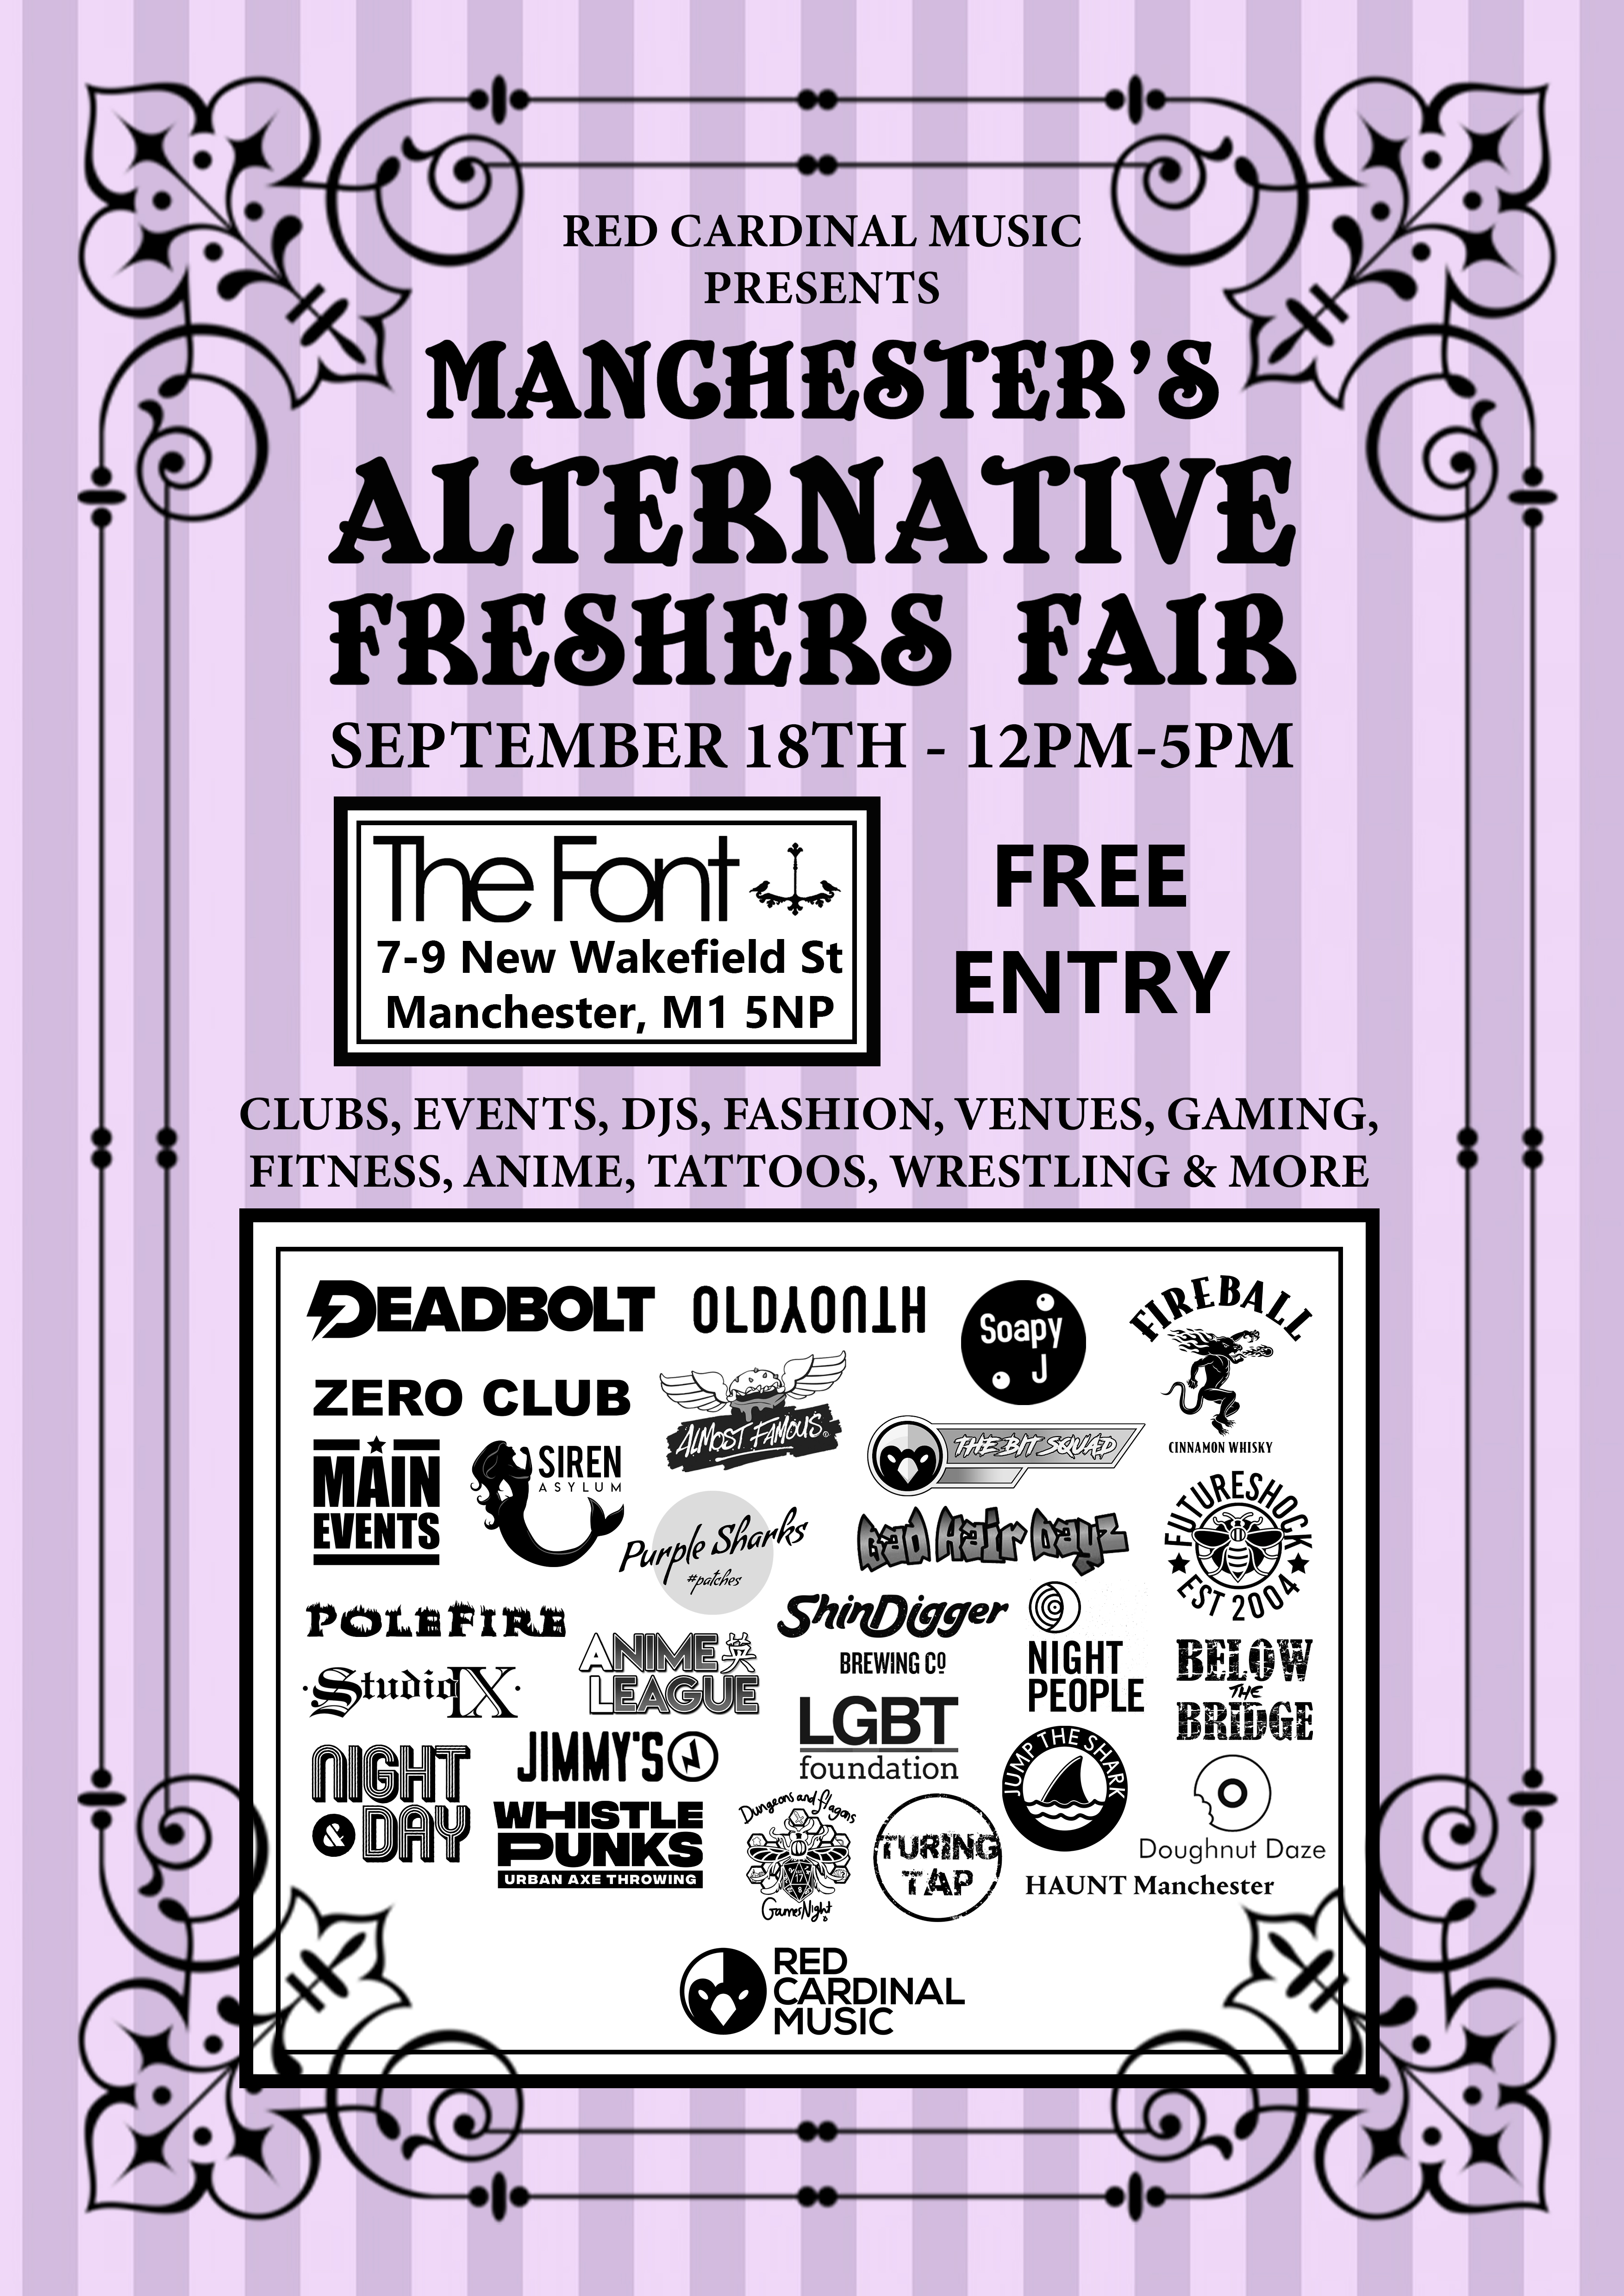 Red Cardinal Music Freshers Fair 2019 - Font Manchester - RGB For Web